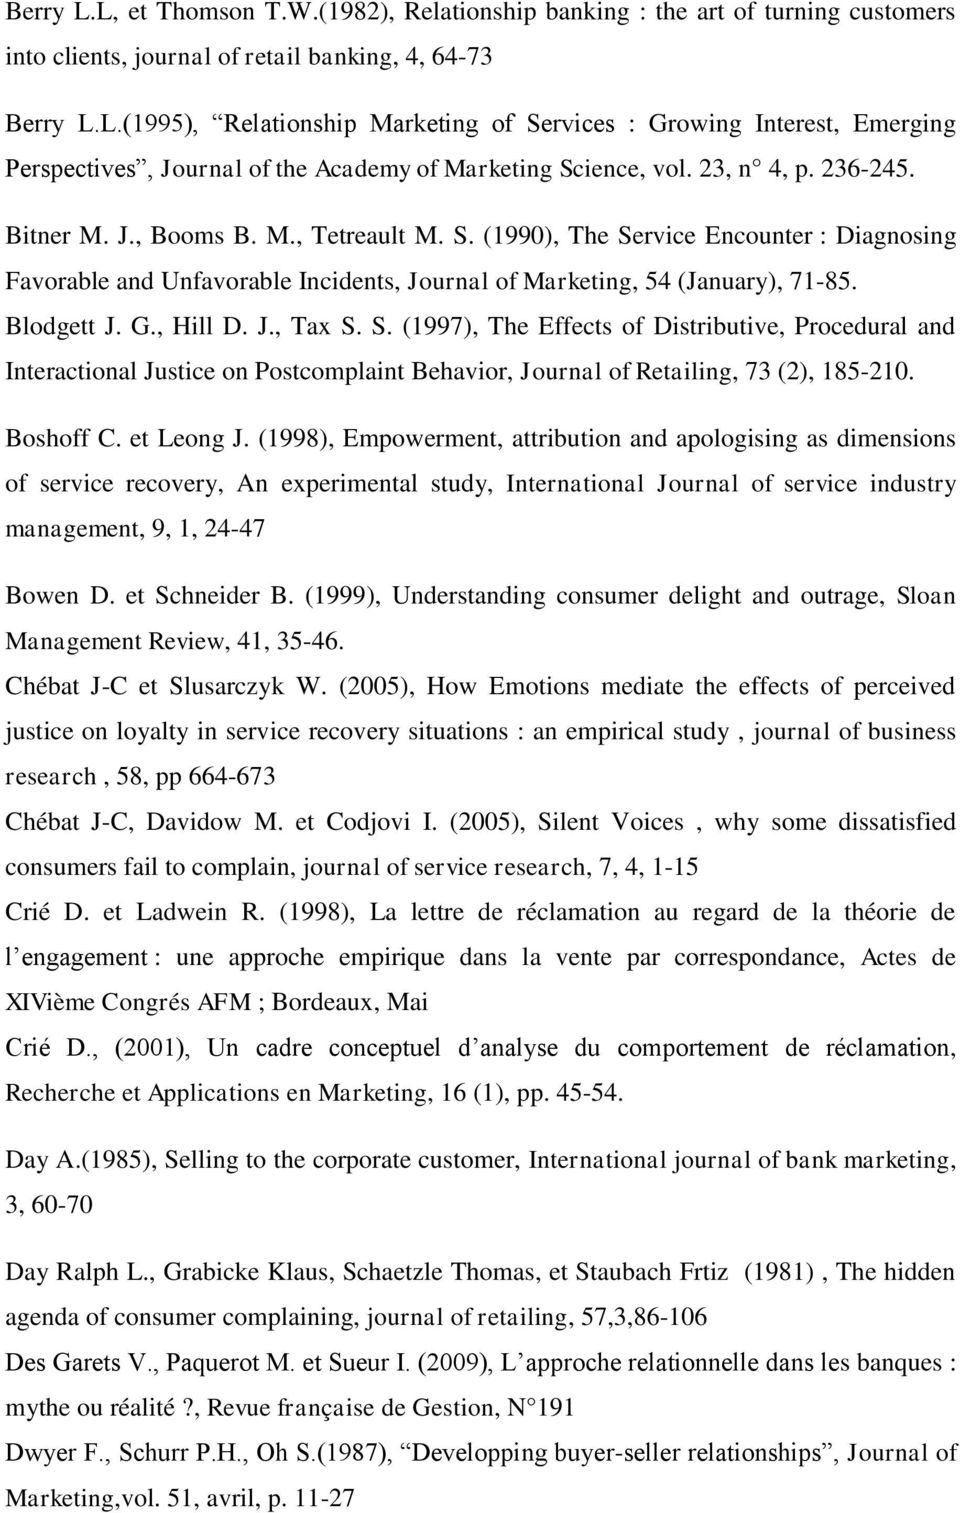 G., Hill D. J., Tax S. S. (1997), The Effects of Distributive, Procedural and Interactional Justice on Postcomplaint Behavior, Journal of Retailing, 73 (2), 185-210. Boshoff C. et Leong J.